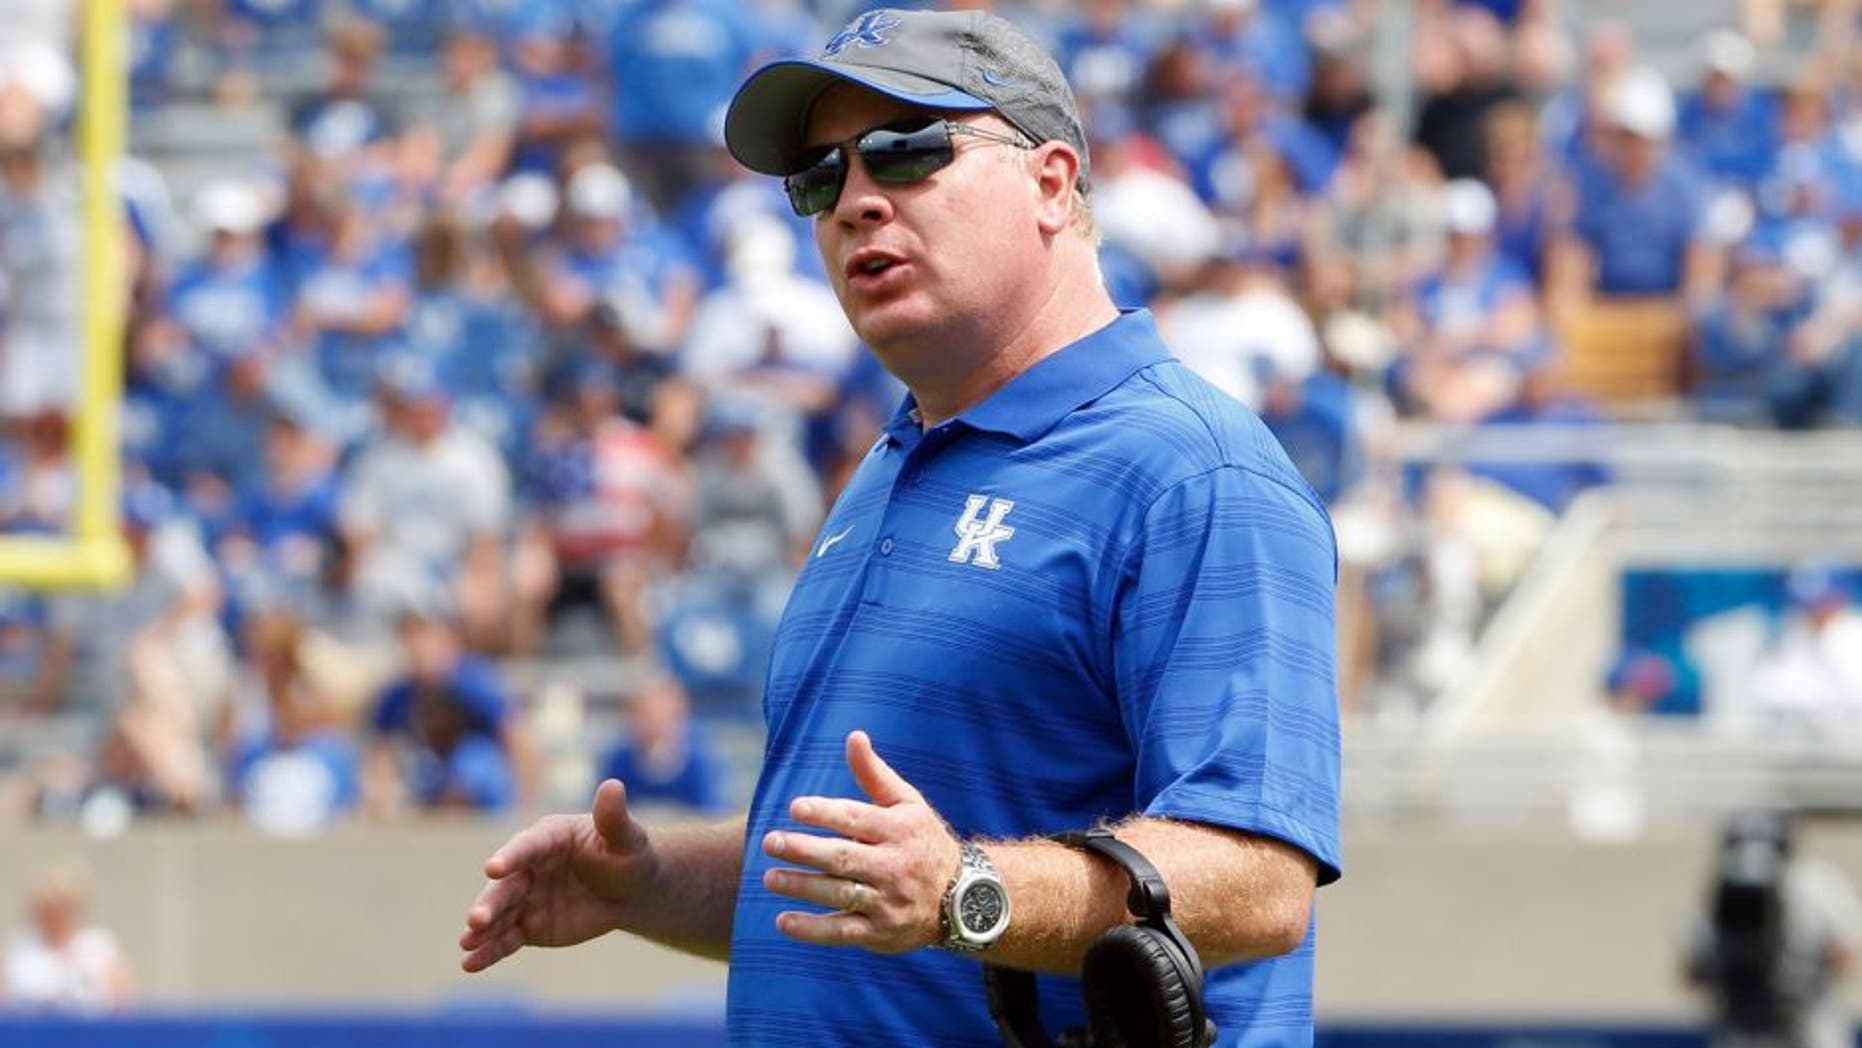 Aug 30, 2014; Lexington, KY, USA; Kentucky Wildcats head coach Mark Stoops reacts during the game against the UT Martin Skyhawks in the second half at Commonwealth Stadium. Kentucky defeated UT Martin 59-14. Mandatory Credit: Mark Zerof-USA TODAY Sports